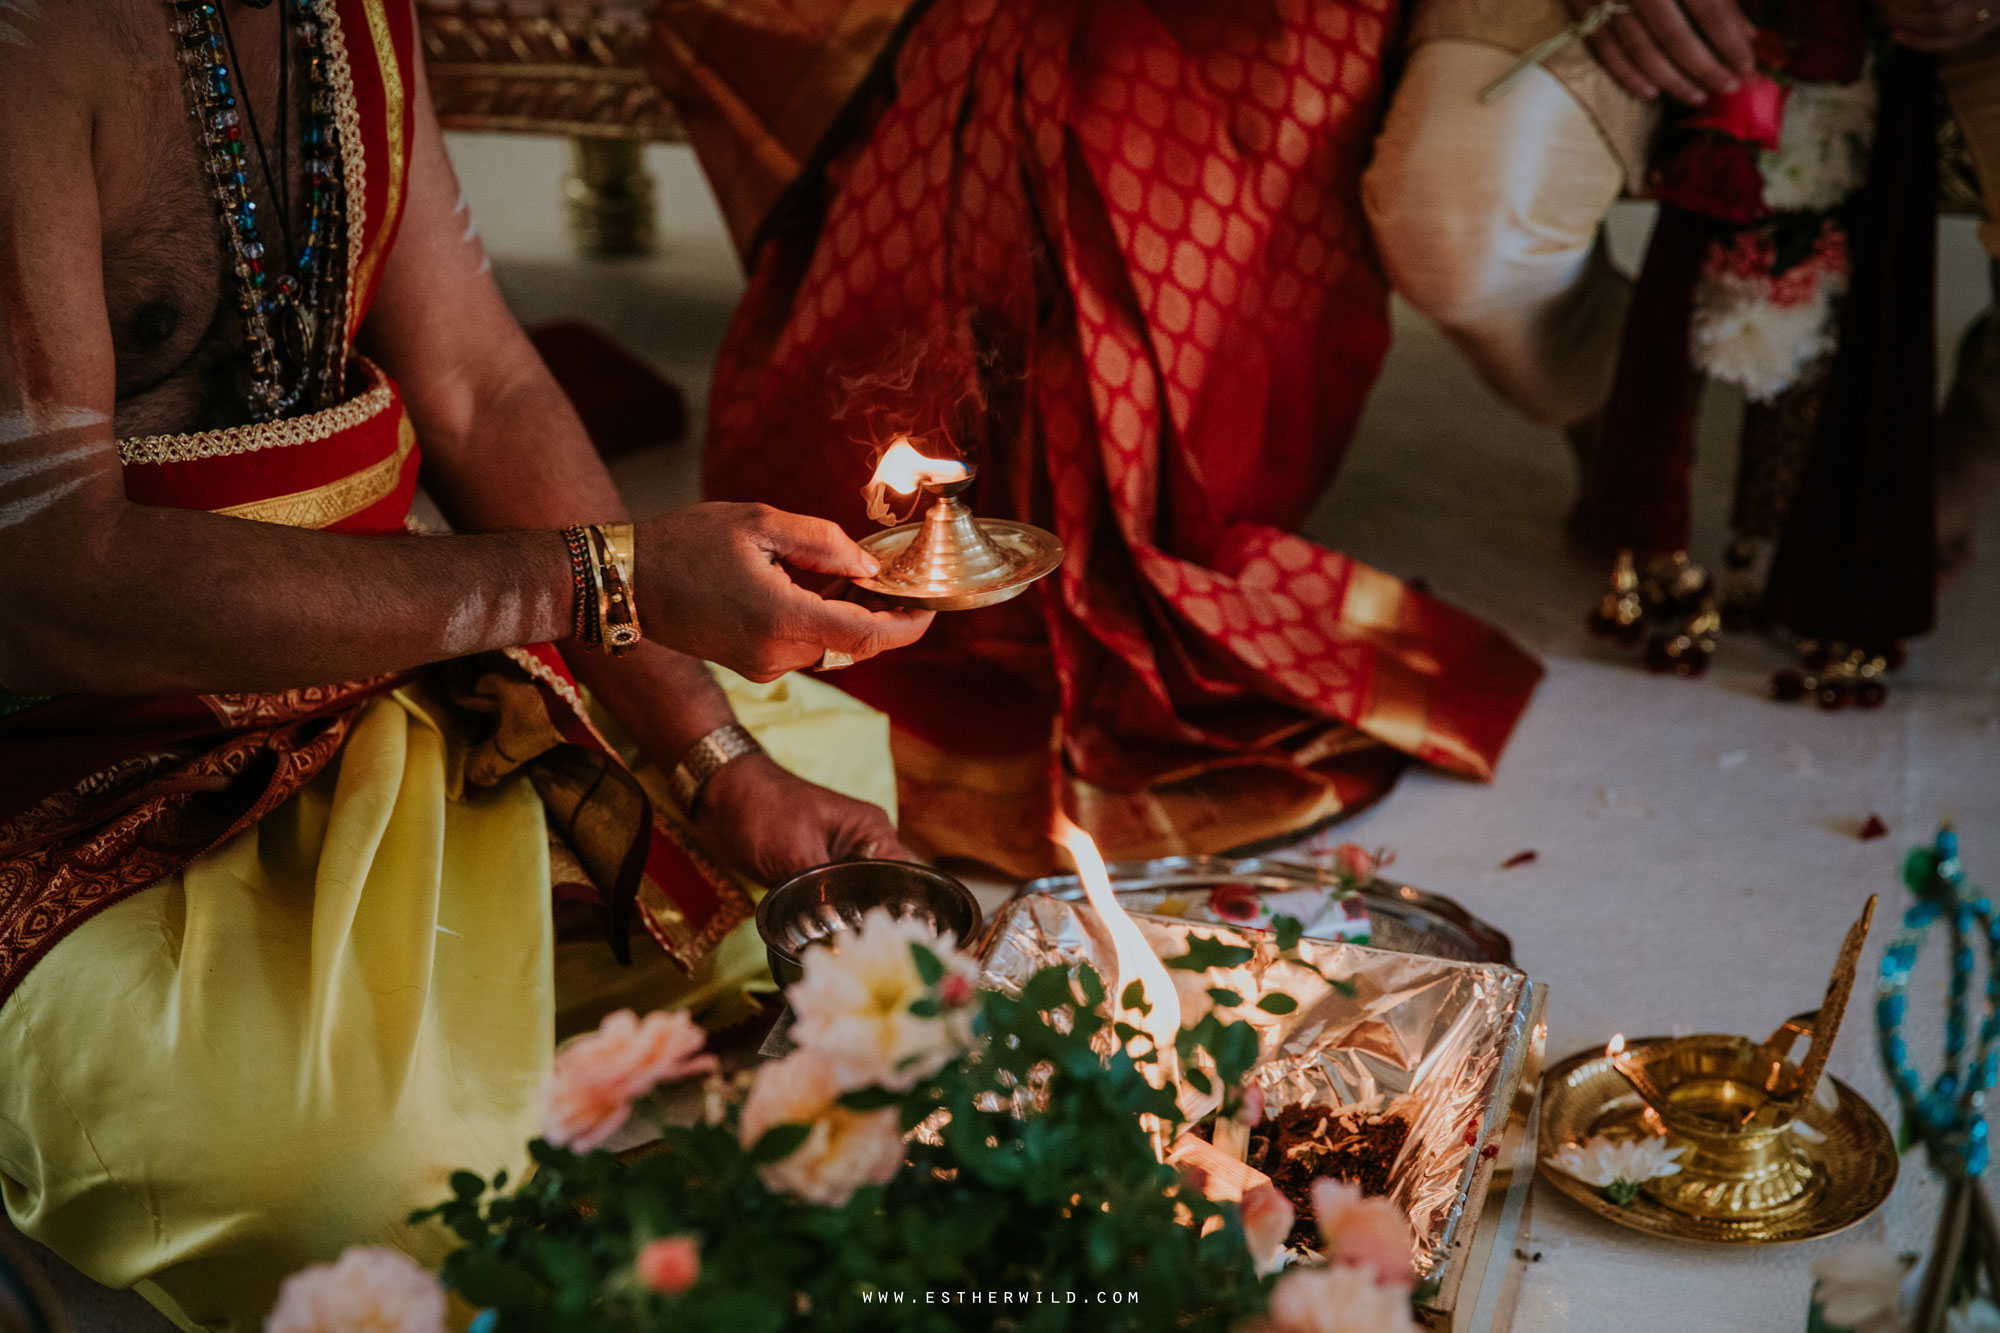 Northbrook_Park_Farnham_Surrey_London_Wedding_Hindu_Fusion_Esther_Wild_Photographer_IMG_4431.jpg